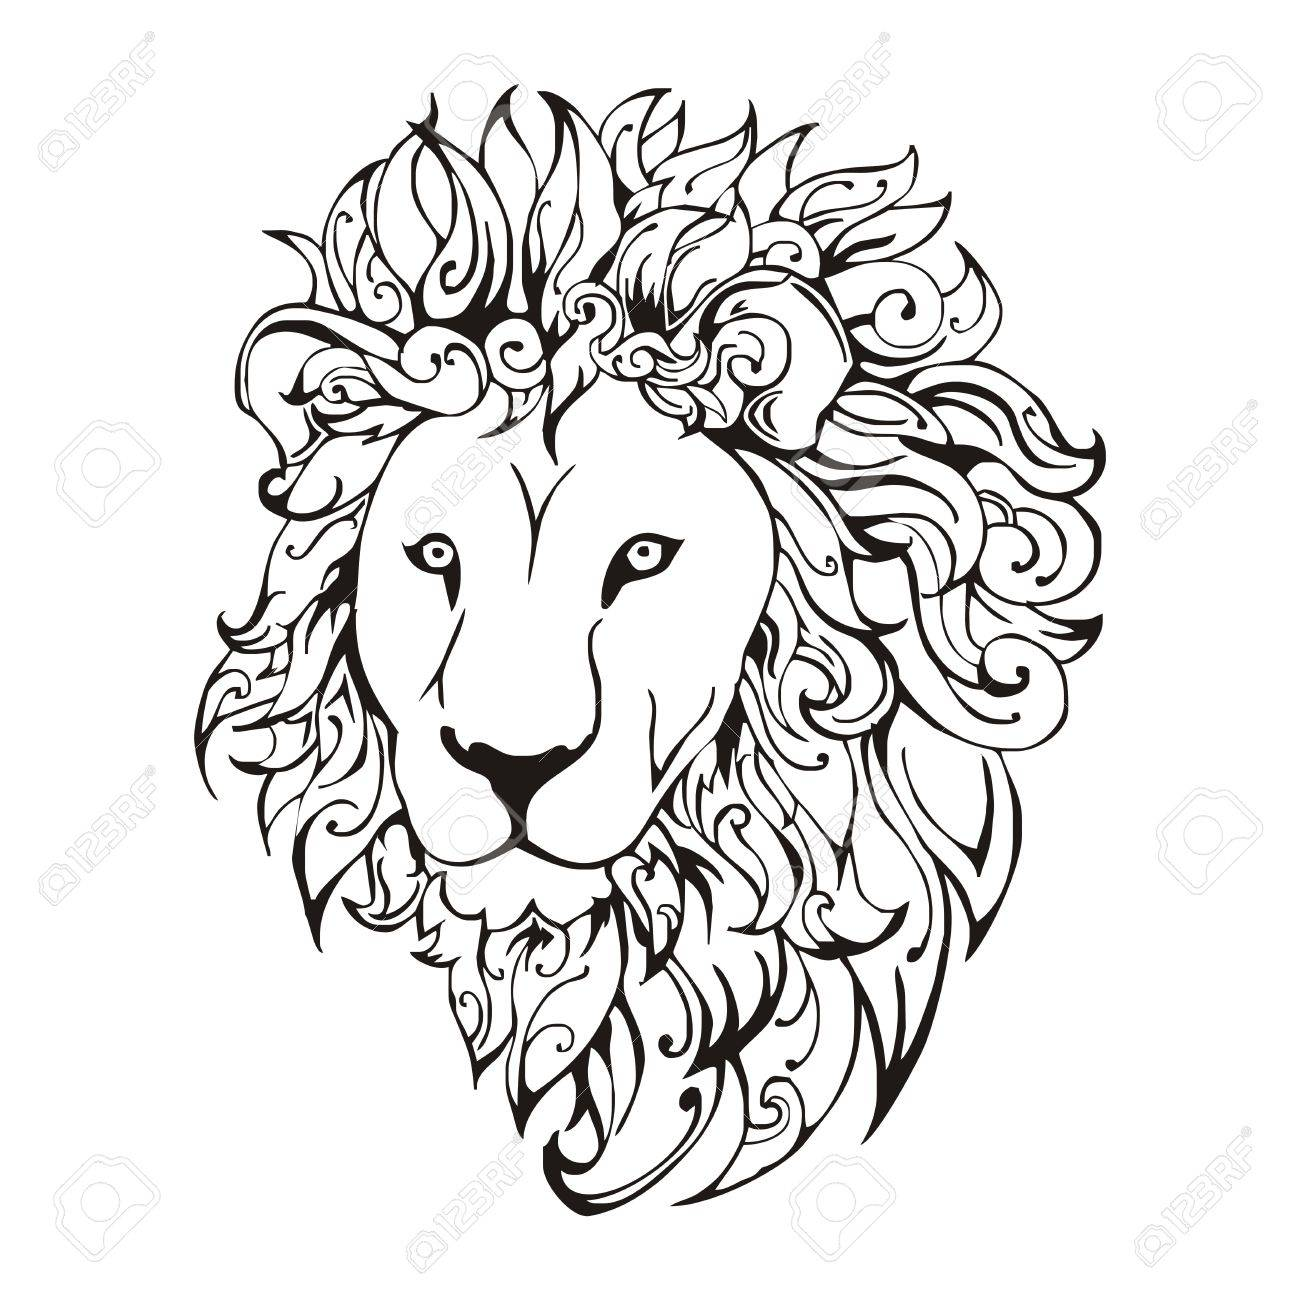 Lion Head Tattoo Vector Royalty Free Cliparts Vectors And Stock